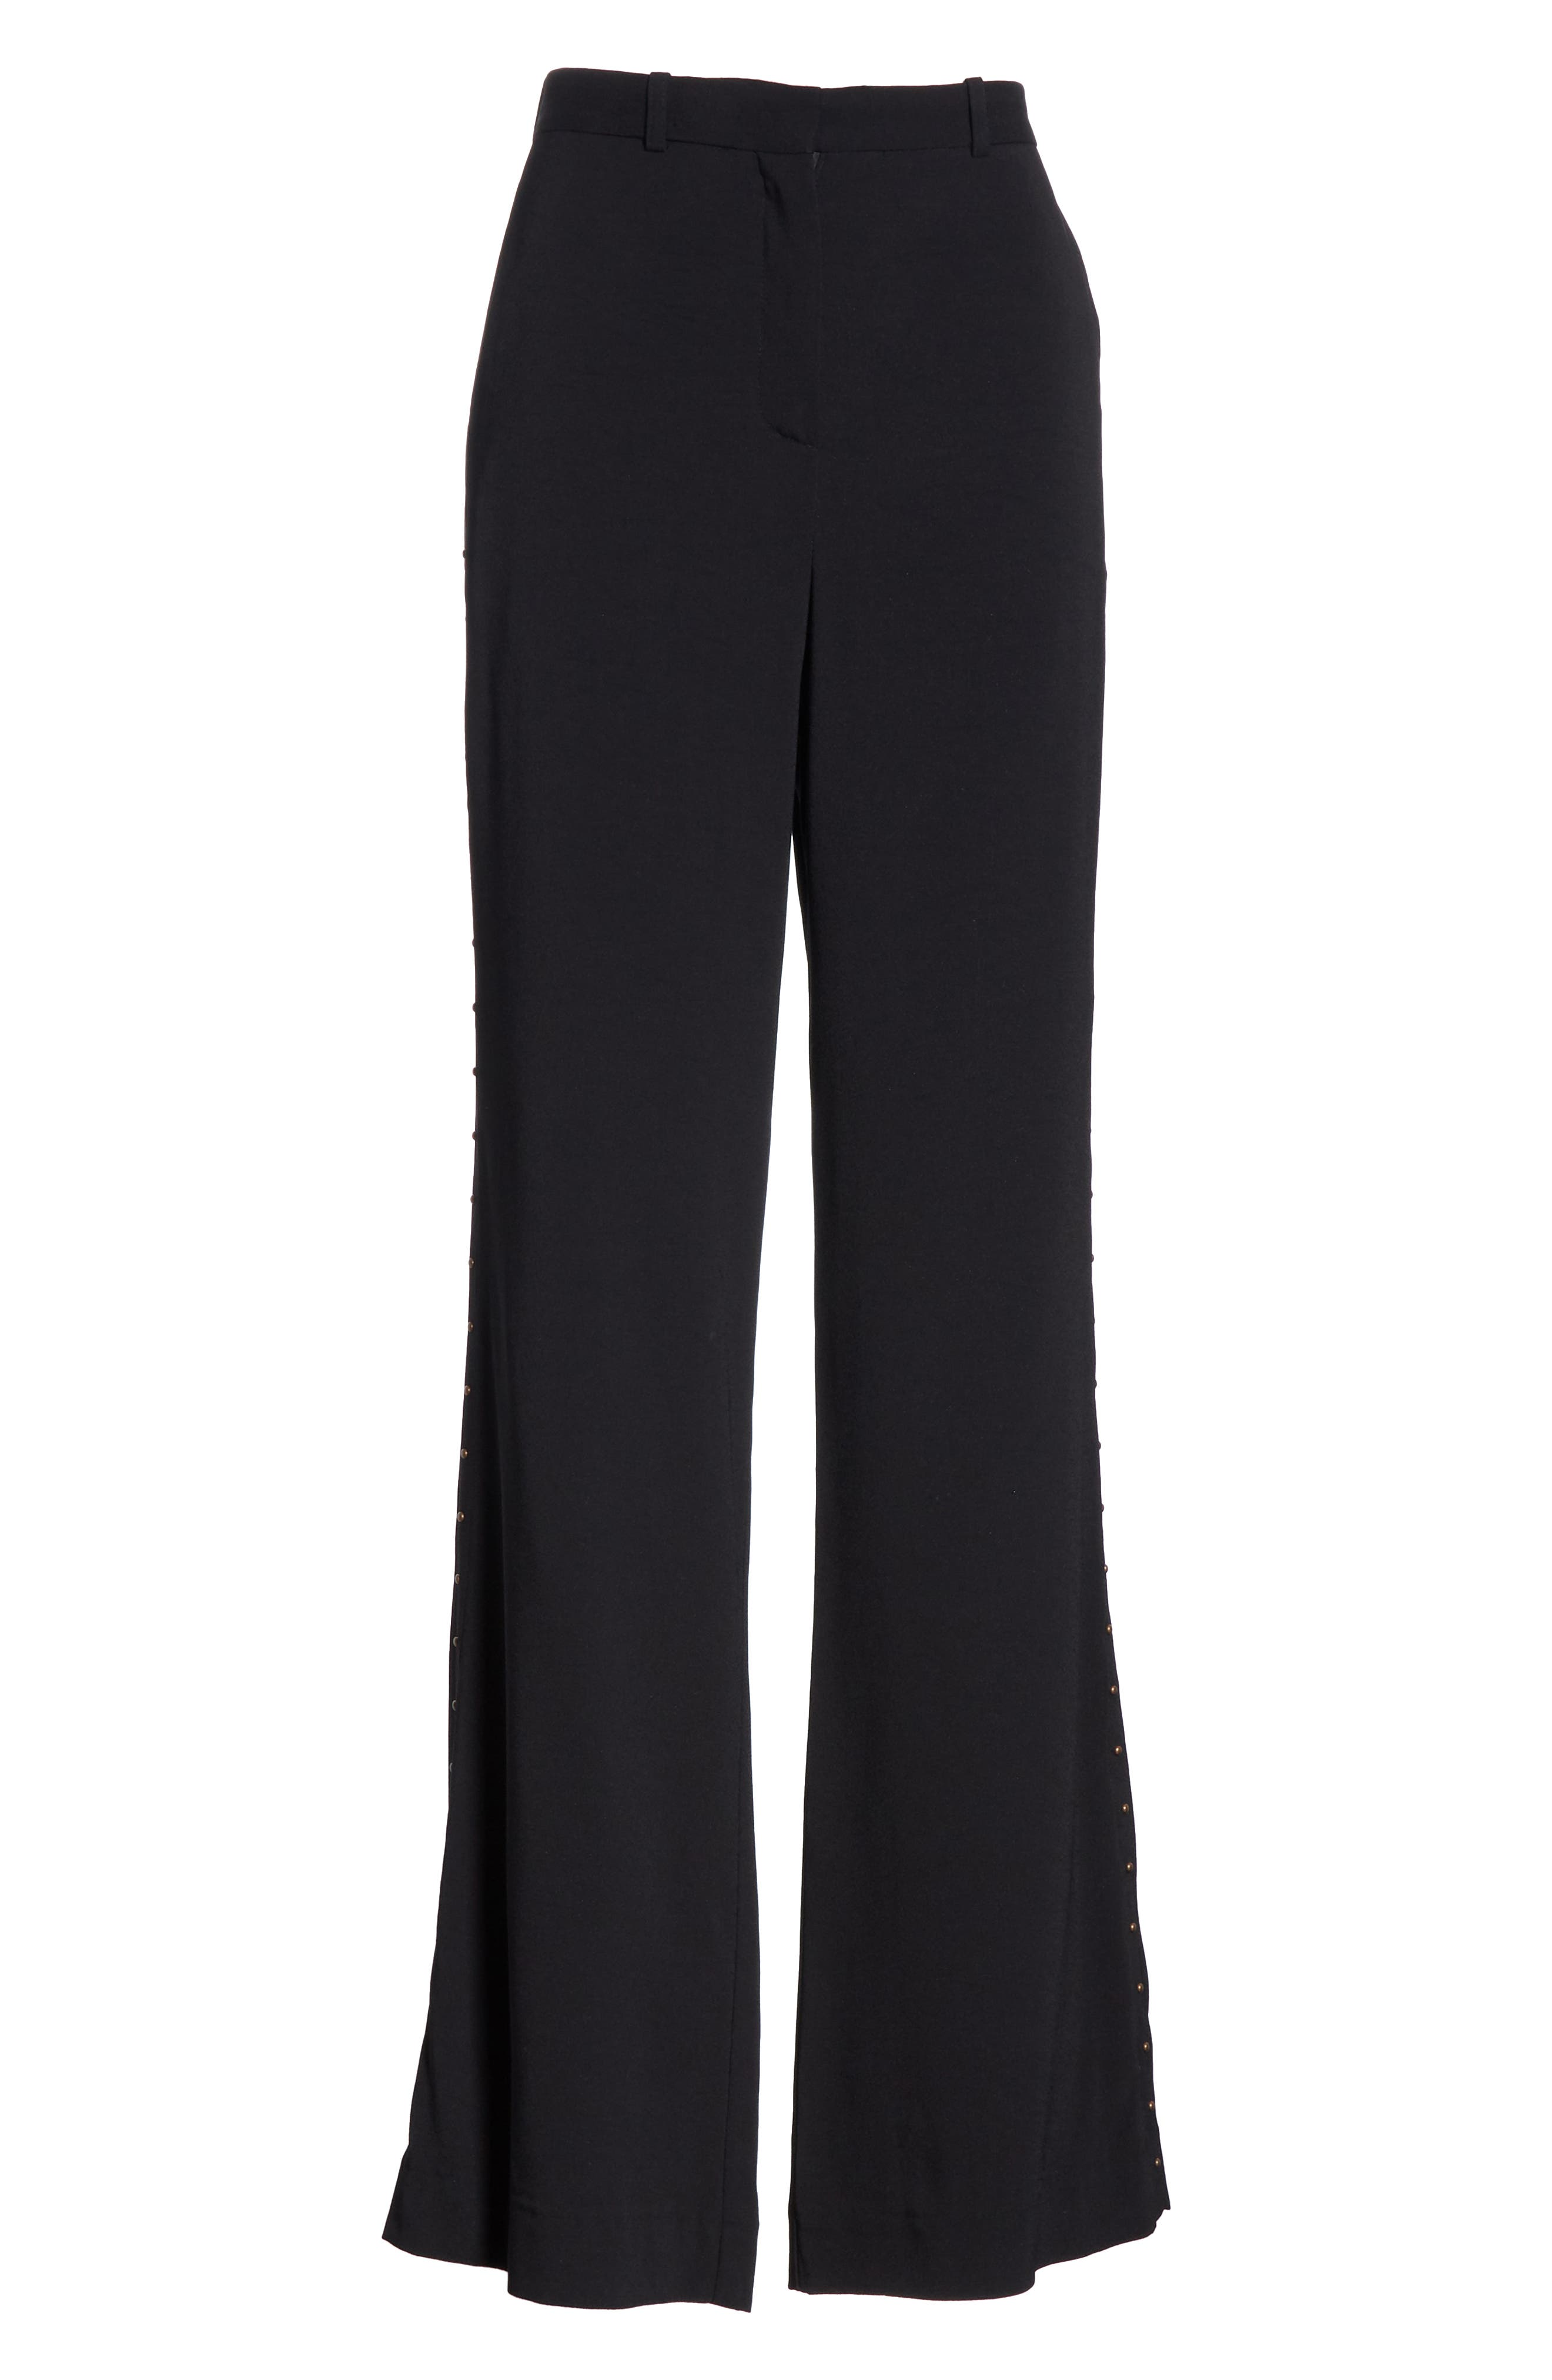 Studded Wide Leg Trousers,                             Alternate thumbnail 7, color,                             BLACK